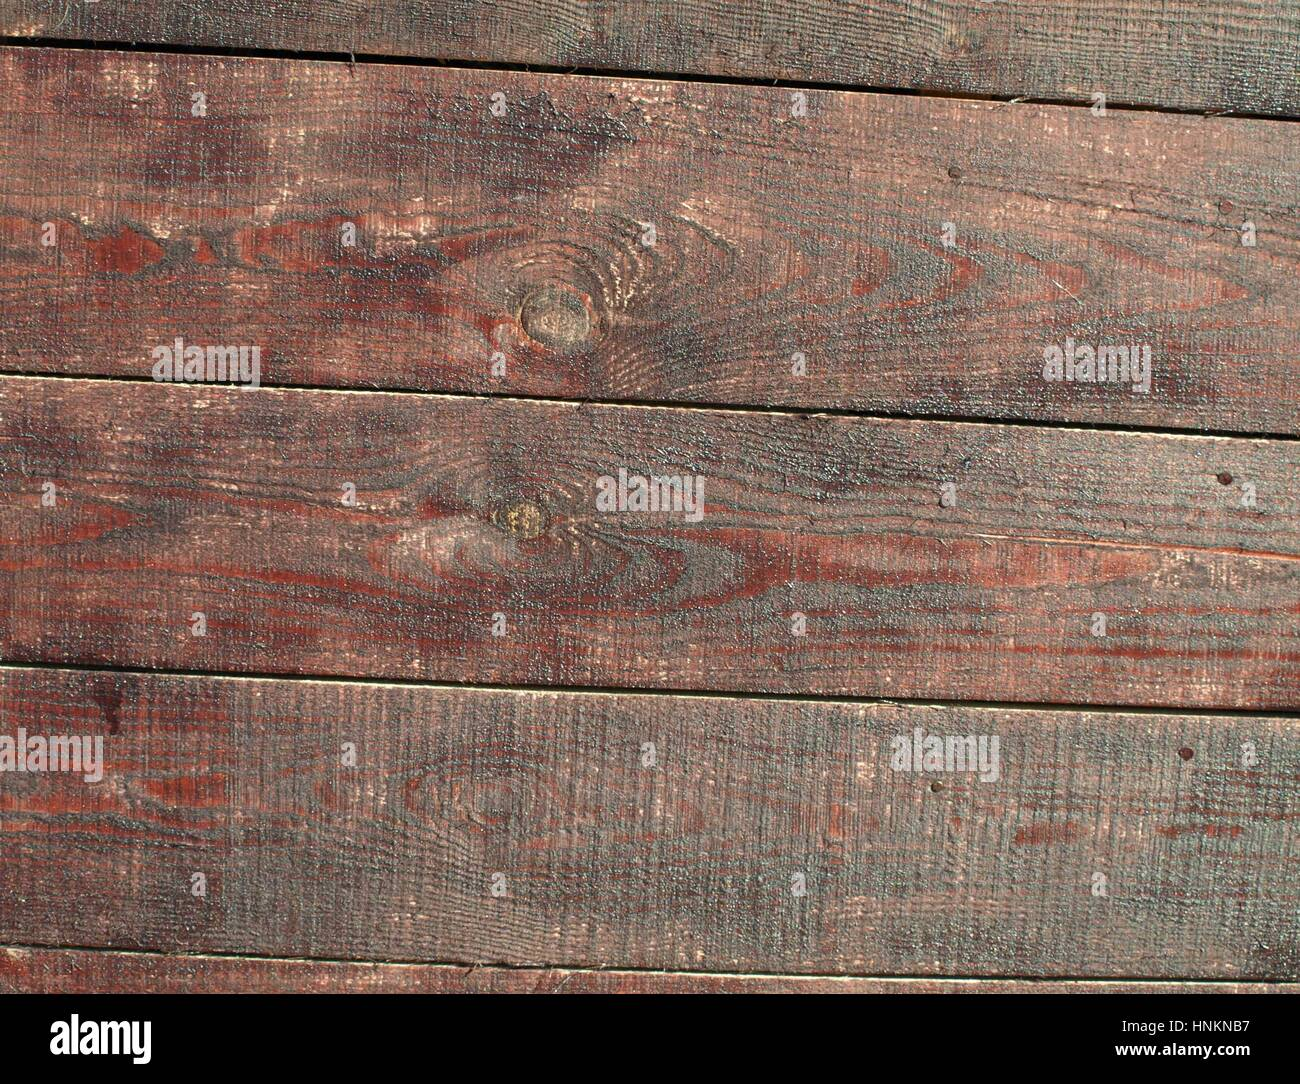 Wooden wall - Stock Image